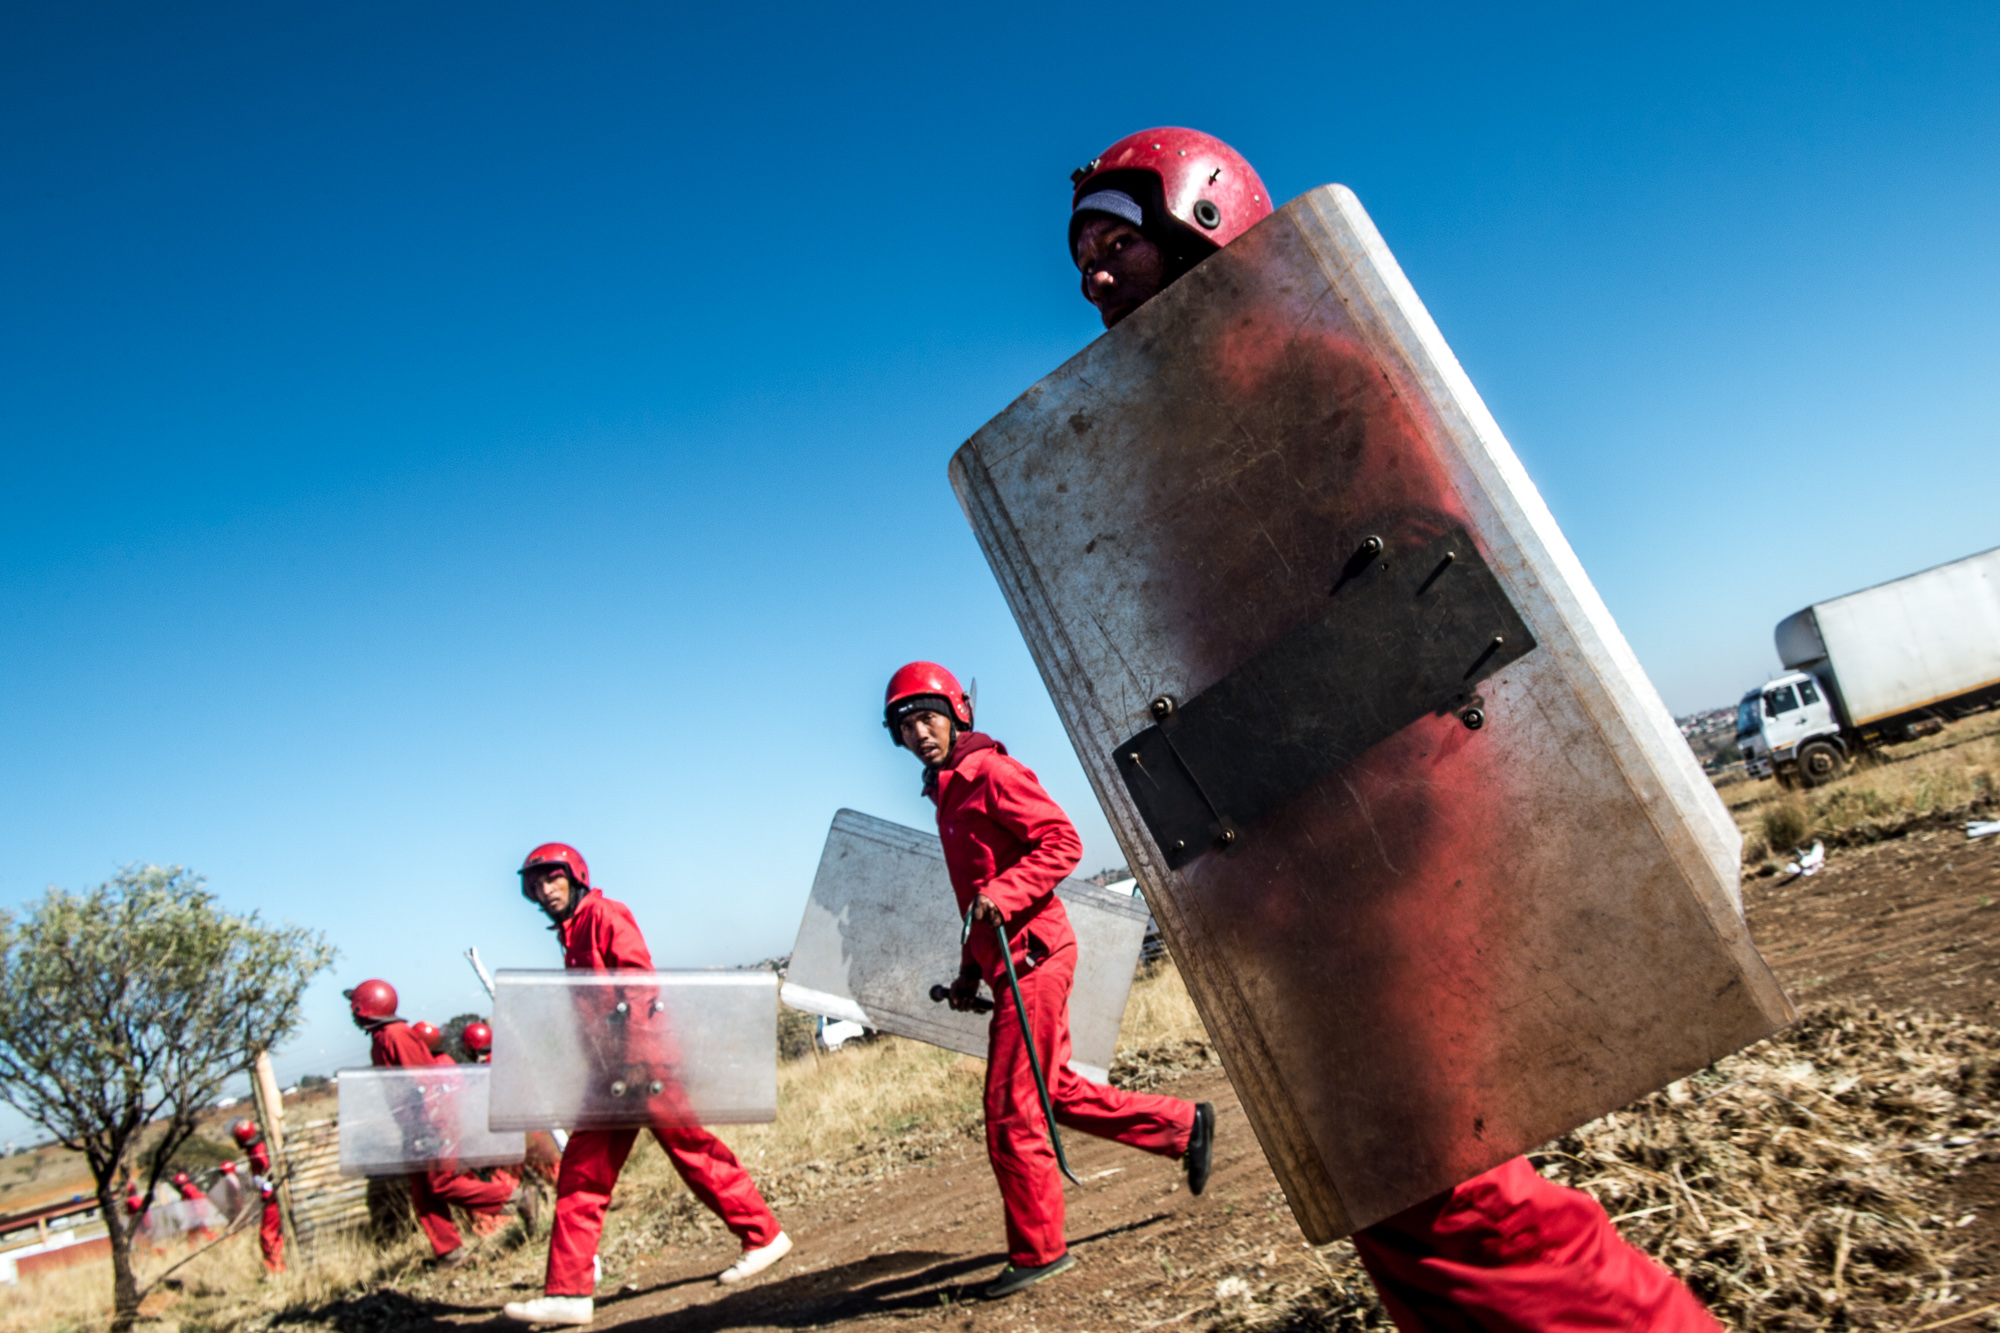 South Africa, Soshanguve, 11.09.2018 // Landgrabbs are occurring more often lately. In this instant, like in many others, the police refused to clear the settlement, so the Red Ants eviction-service was called in to storm the settlement with shields and crowbars. // Lucas Bäuml